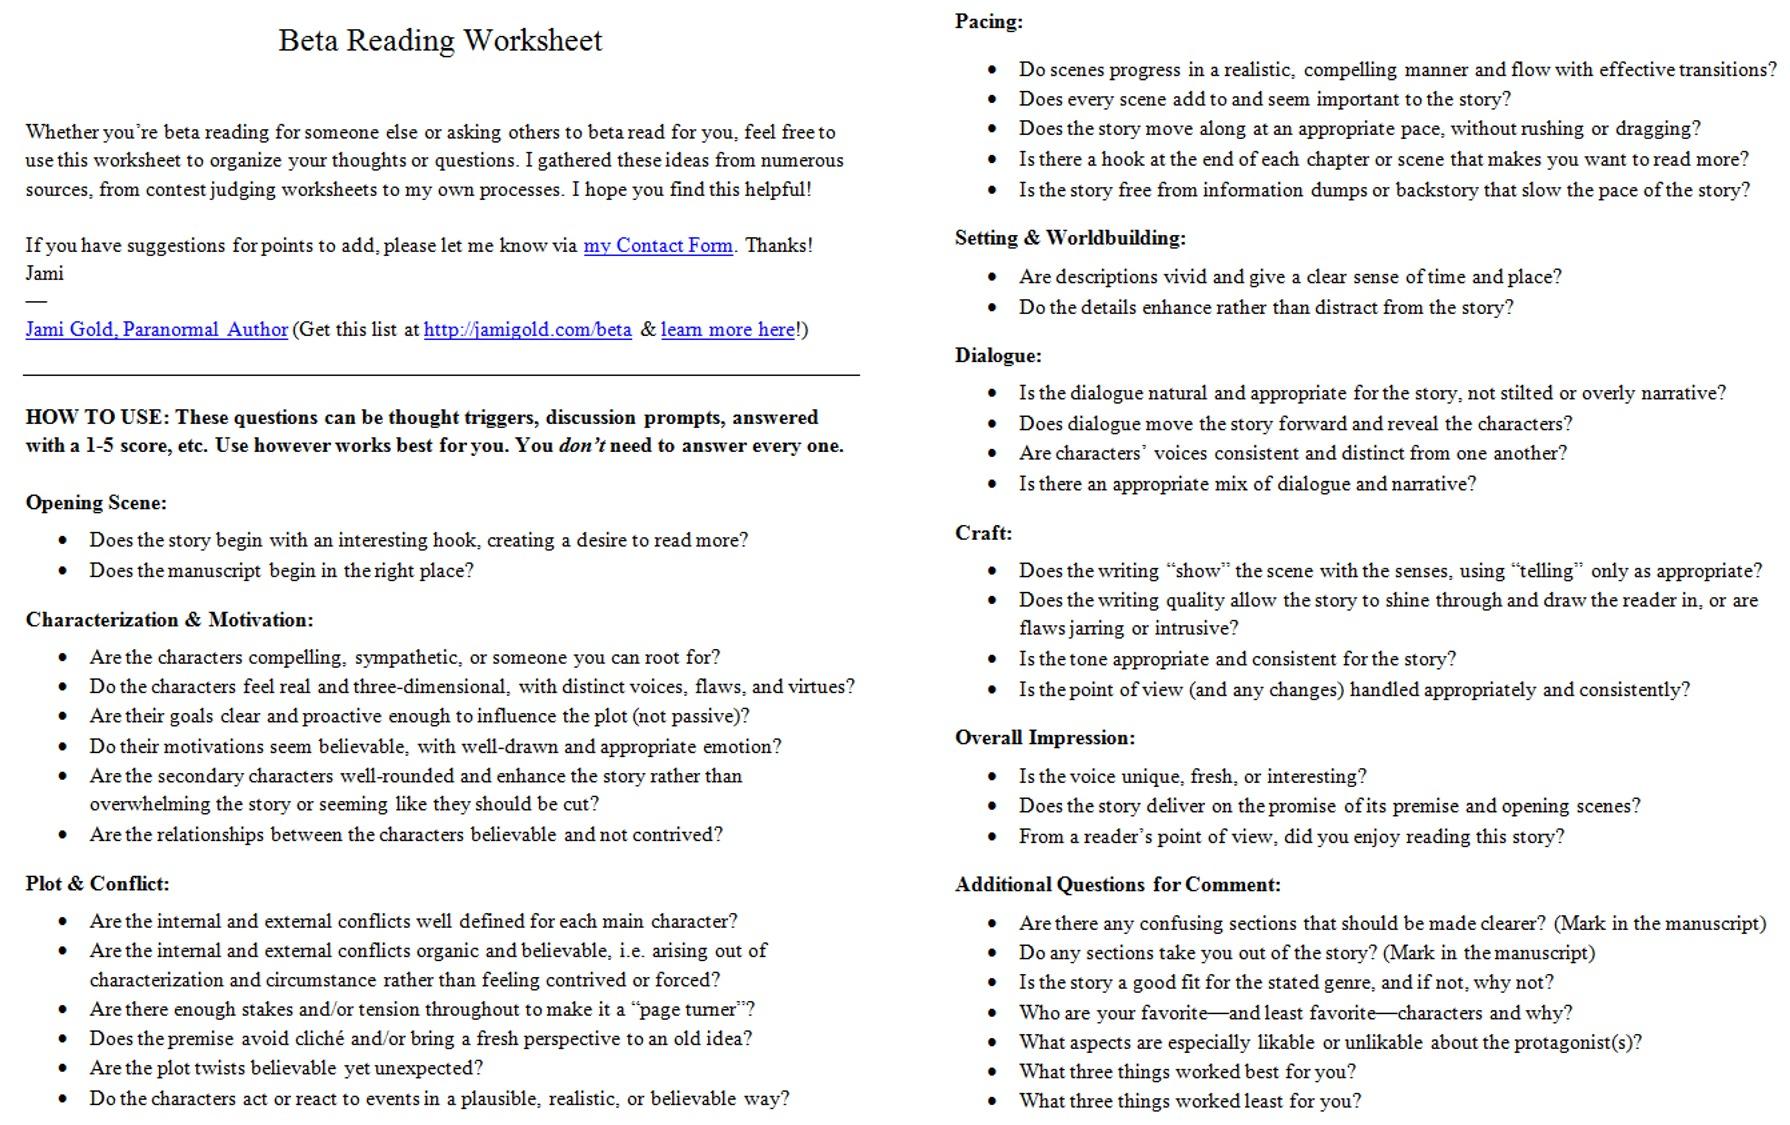 Proatmealus  Wonderful Worksheets For Writers  Jami Gold Paranormal Author With Gorgeous Screen Shot Of The Twopage Beta Reading Worksheet With Appealing Subject Verb Agreement Worksheet St Grade Also Social Studies Worksheet In Addition Similar Polygons And Triangles Worksheet And Problem Solving Worksheets For Grade  As Well As Distance Formula Worksheets Additionally Graph Worksheet From Jamigoldcom With Proatmealus  Gorgeous Worksheets For Writers  Jami Gold Paranormal Author With Appealing Screen Shot Of The Twopage Beta Reading Worksheet And Wonderful Subject Verb Agreement Worksheet St Grade Also Social Studies Worksheet In Addition Similar Polygons And Triangles Worksheet From Jamigoldcom